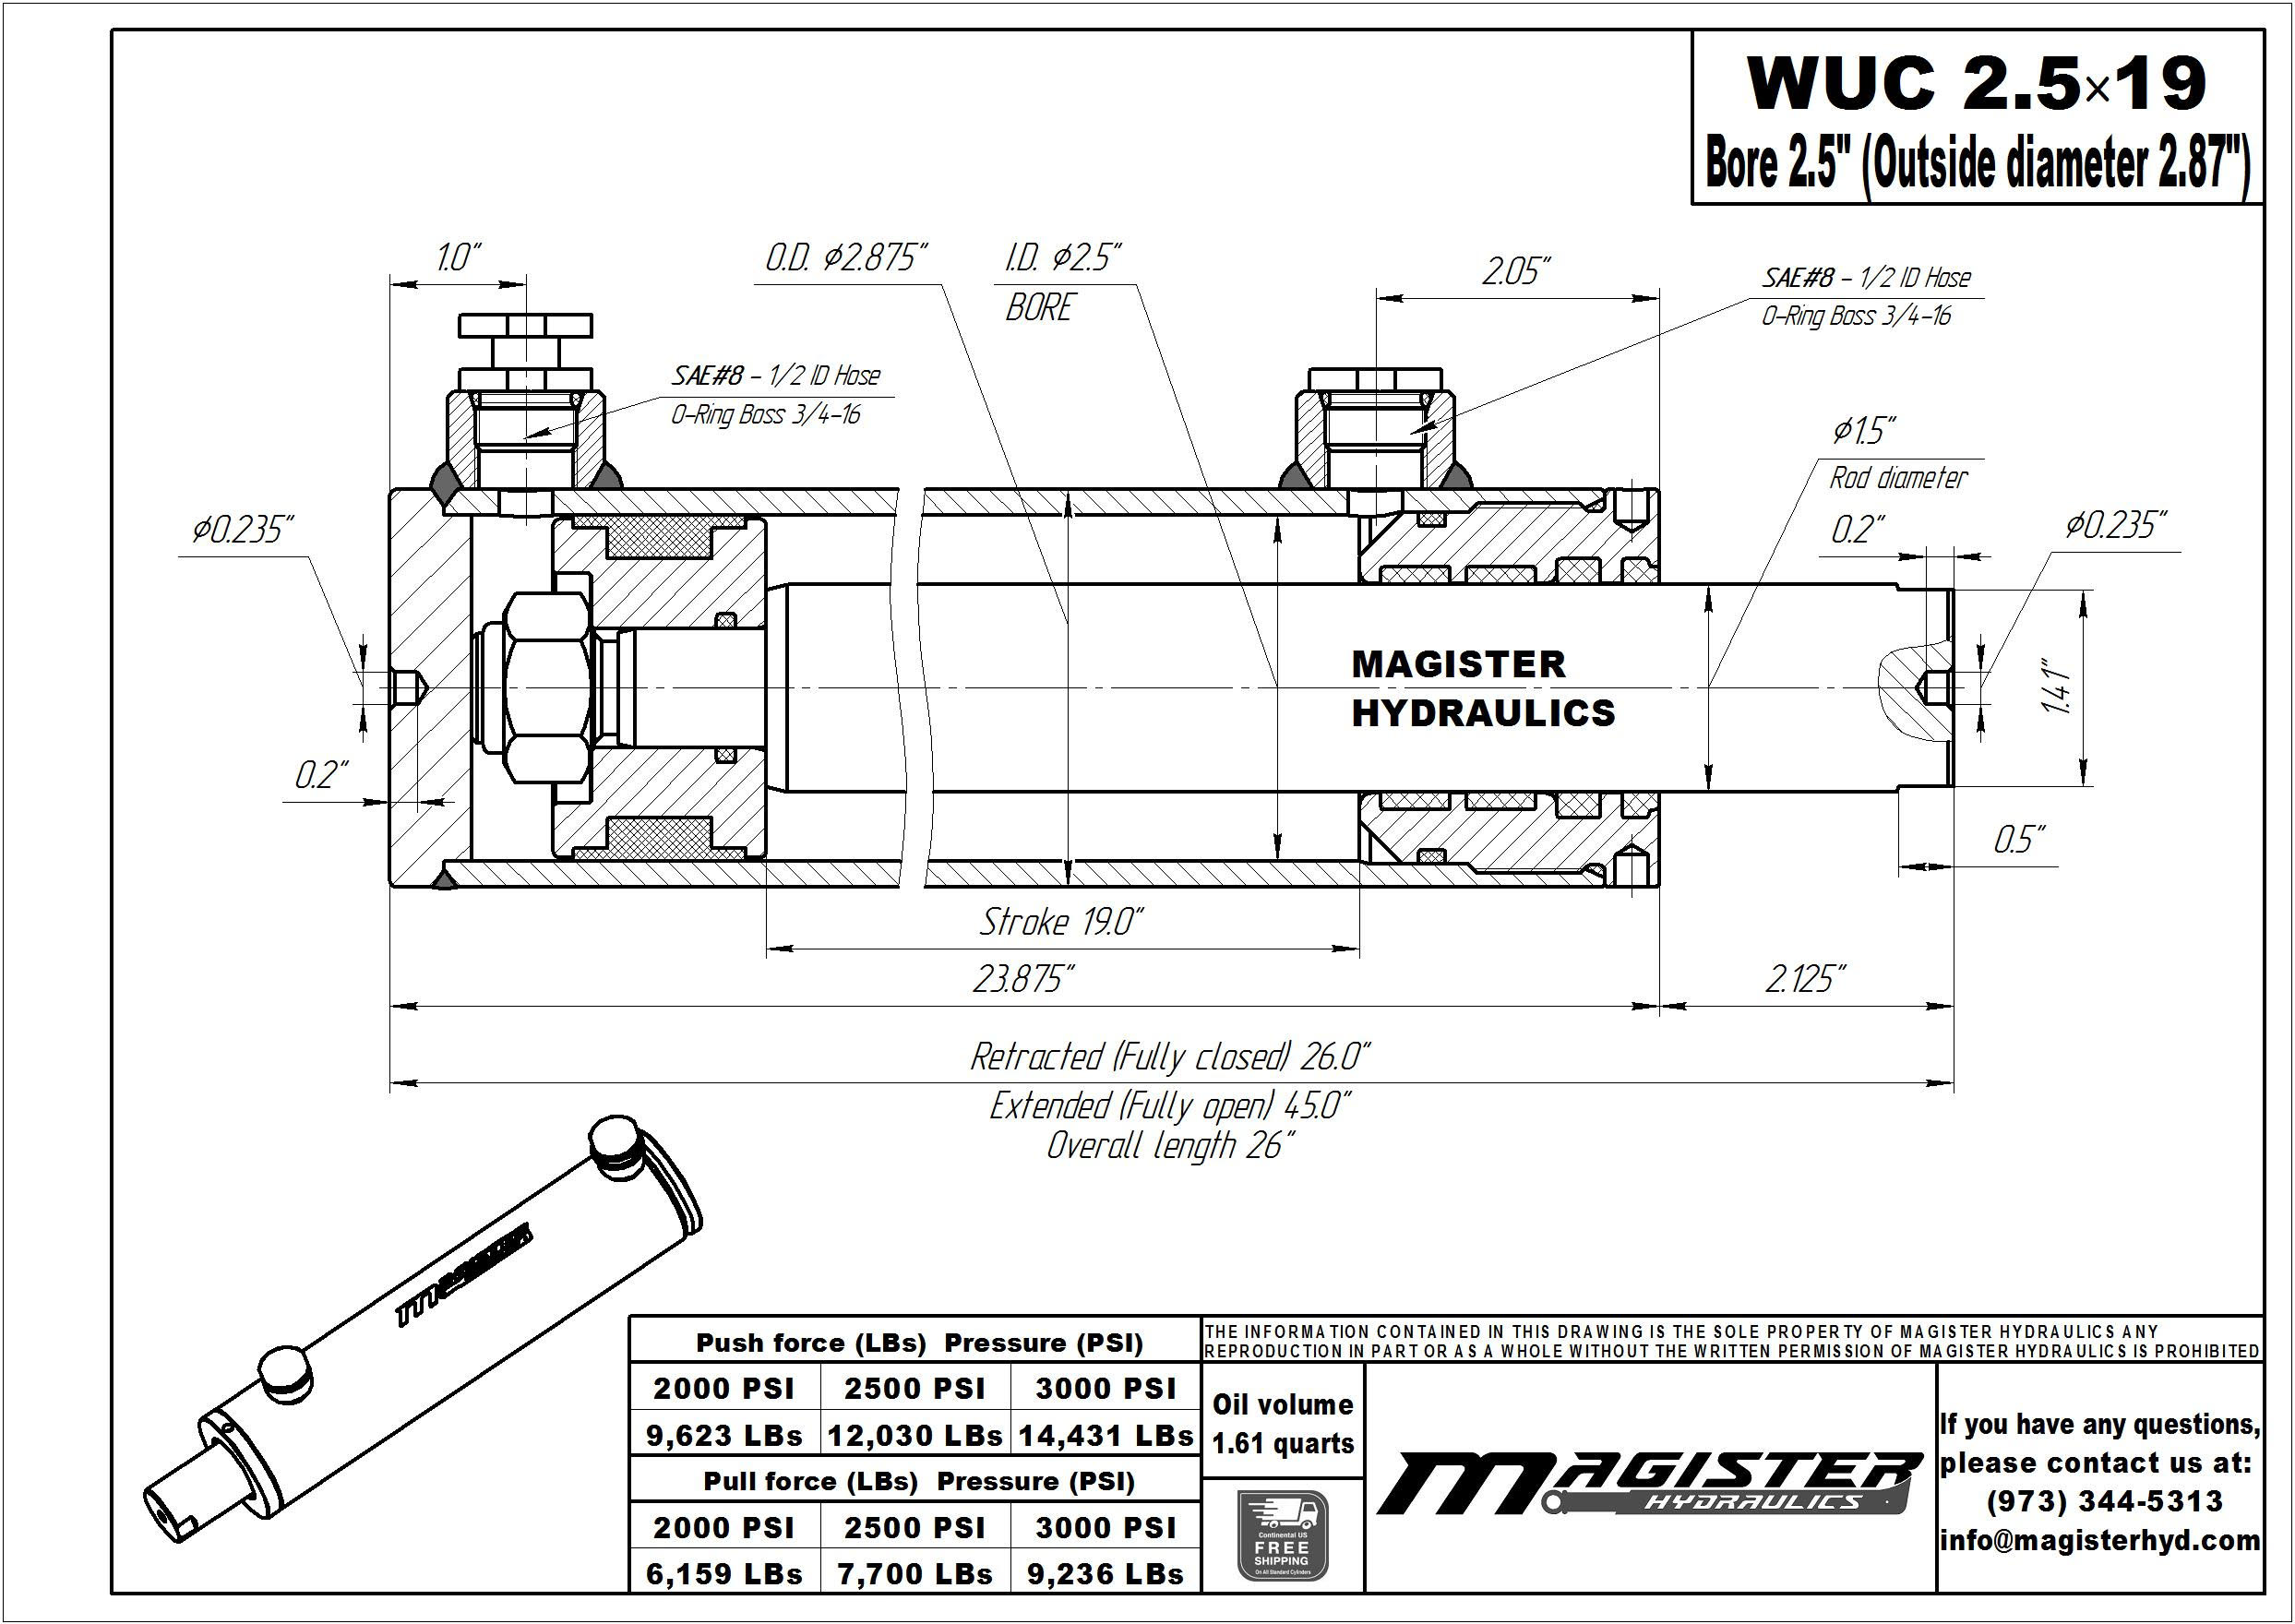 2.5 bore x 19 stroke hydraulic cylinder, welded universal double acting cylinder | Magister Hydraulics